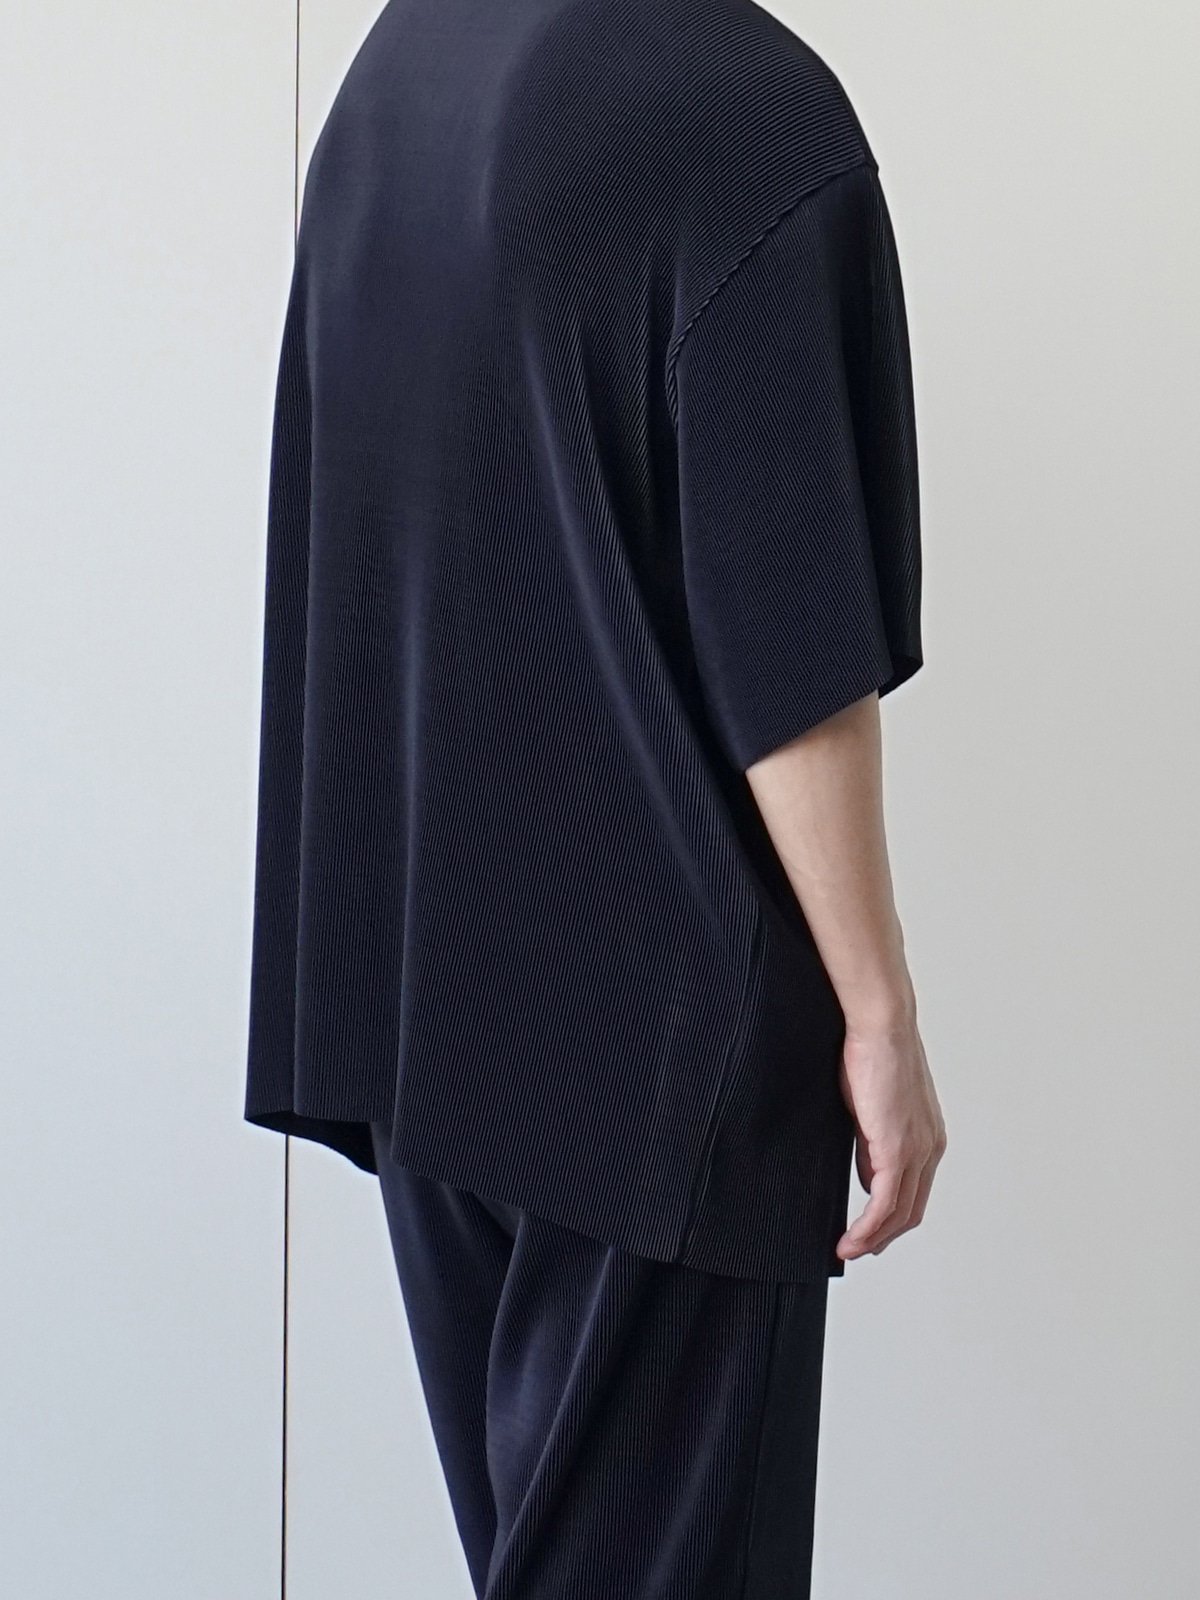 Common Pleats Half Tee (4color)